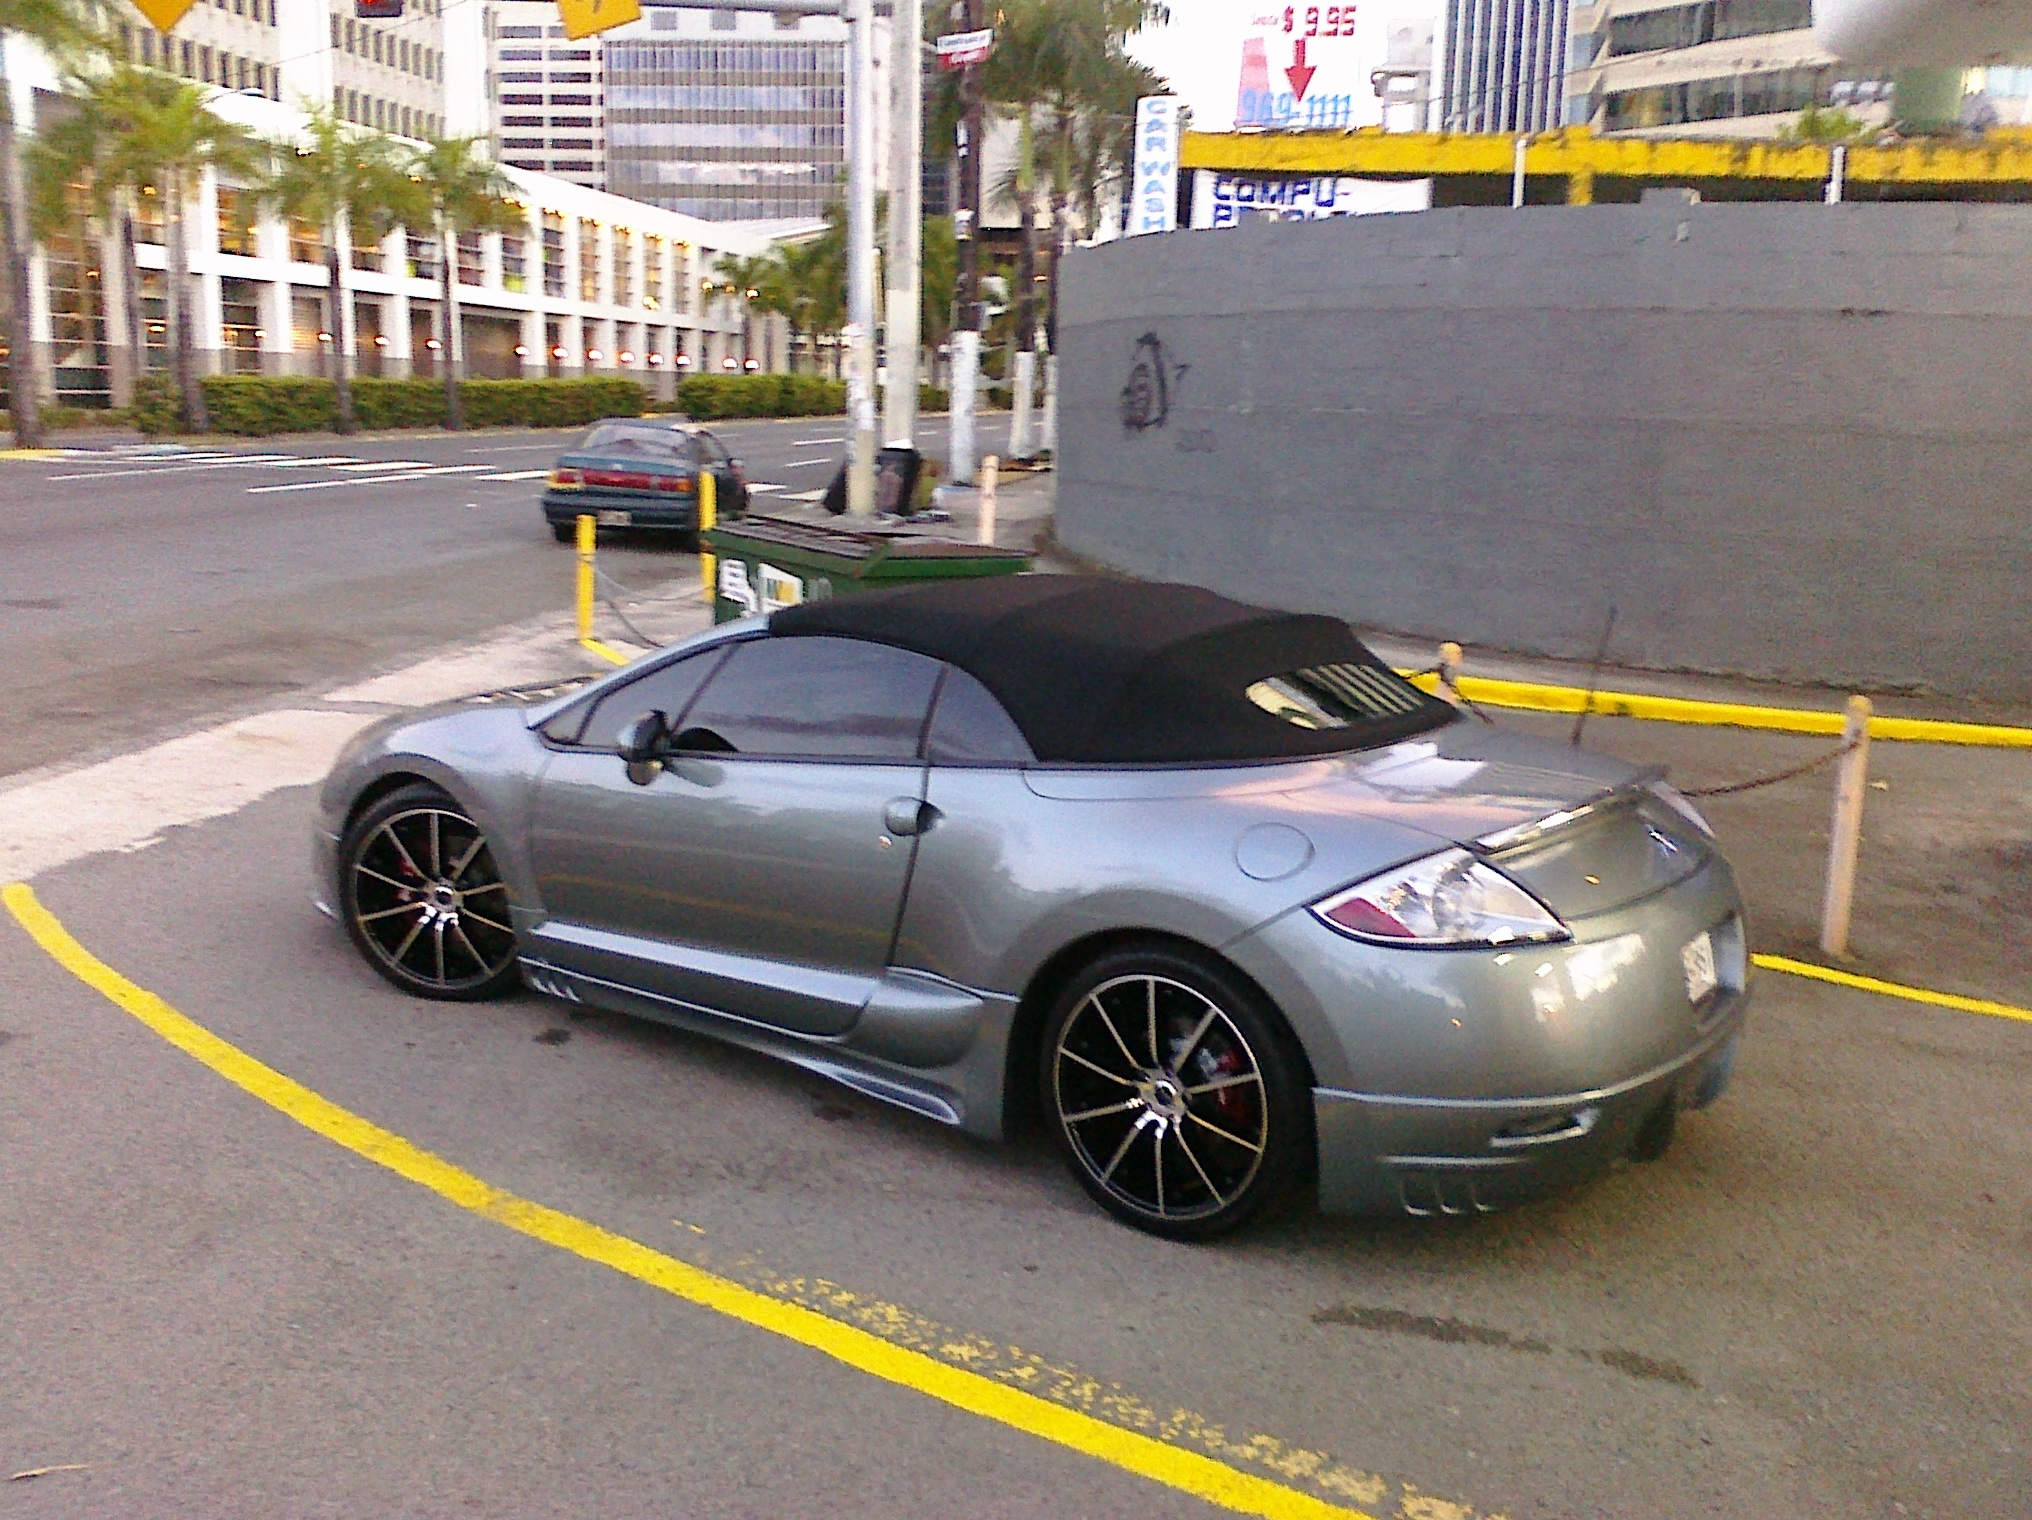 mitsubishi il eclipse for vehicle in richmond sale image img spyder